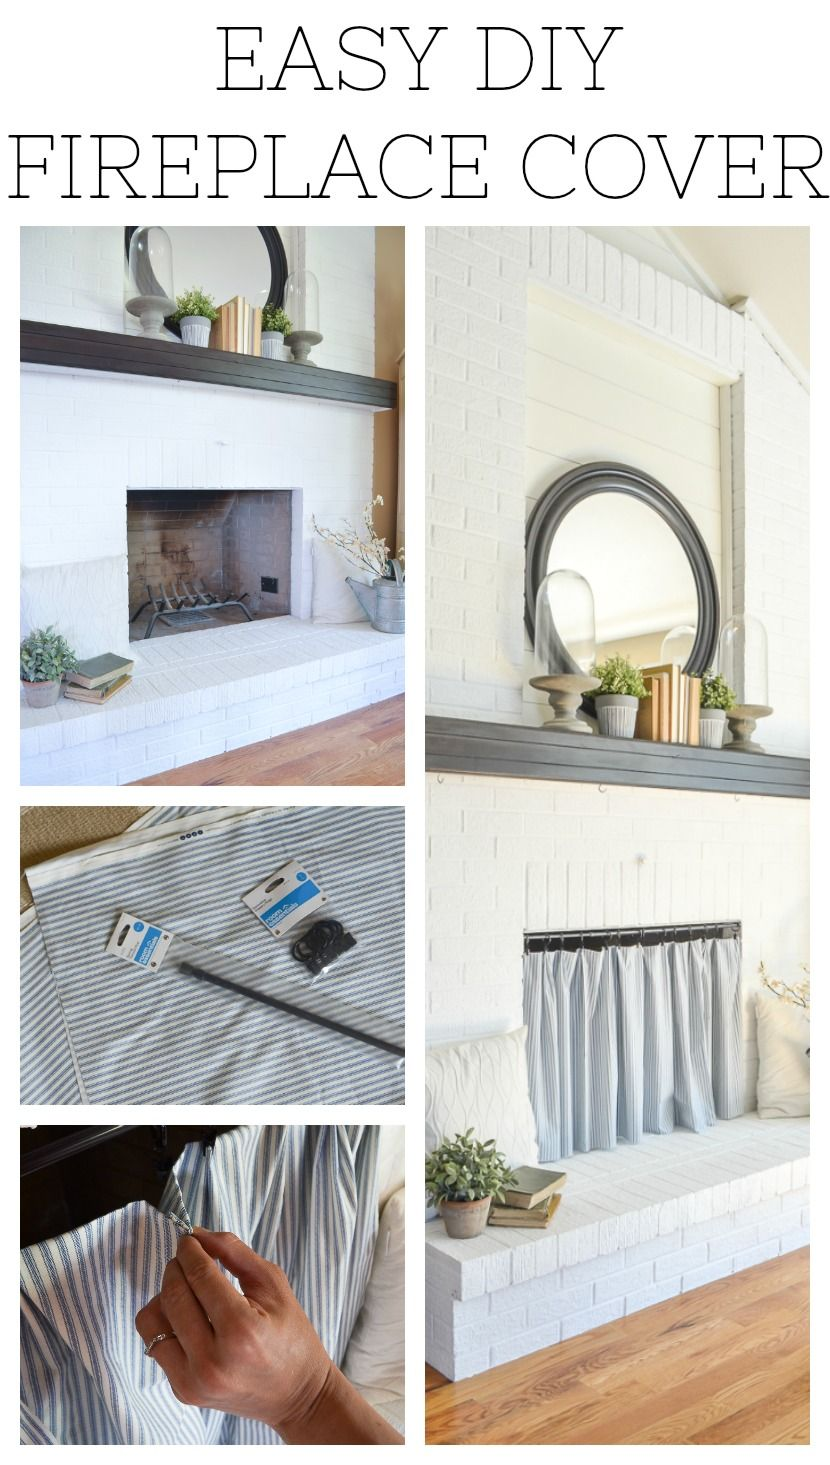 Easy Diy Fireplace Cover Fireplace Cover Diy Fireplace Classic Fireplace